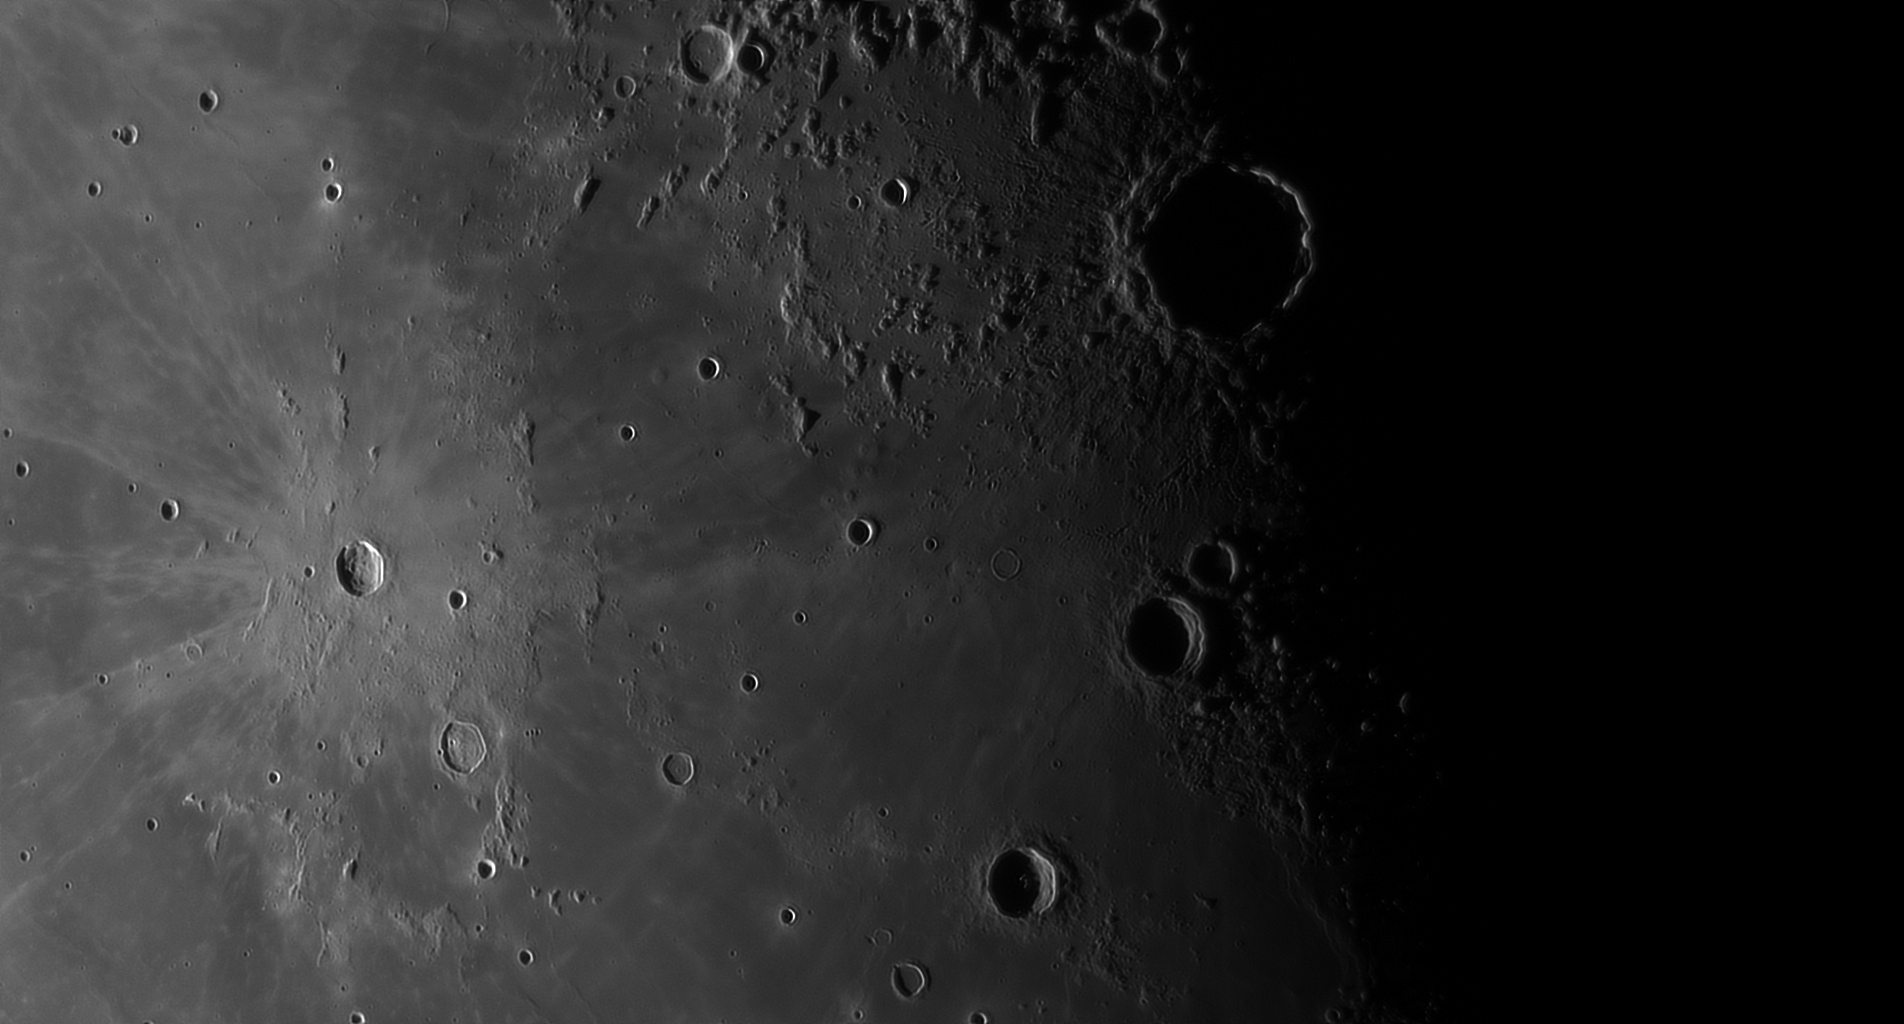 5d97a658af808_Moon_055712_230919_ZWOASI290MM_Rouge_23A_AS_P40_lapl4_ap288.jpg.bb163bb69ac7406d1928aa5cd1c2875b.jpg